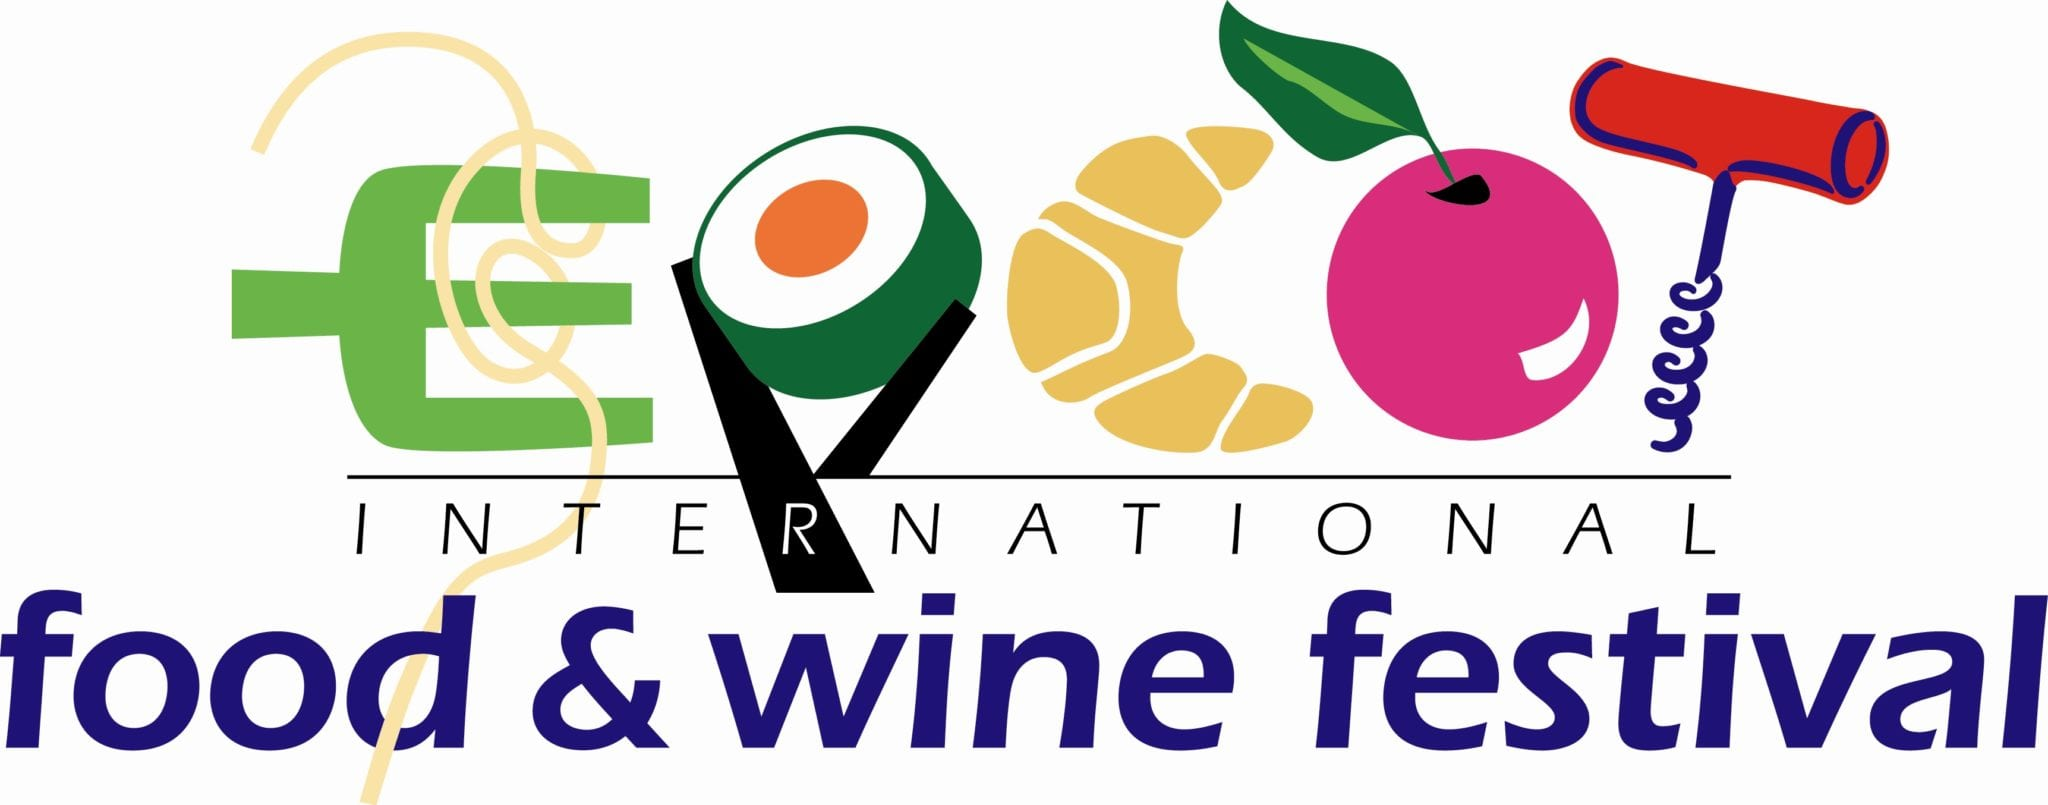 Start Planning How to Experience 2017 Epcot International Food & Wine Festival 12